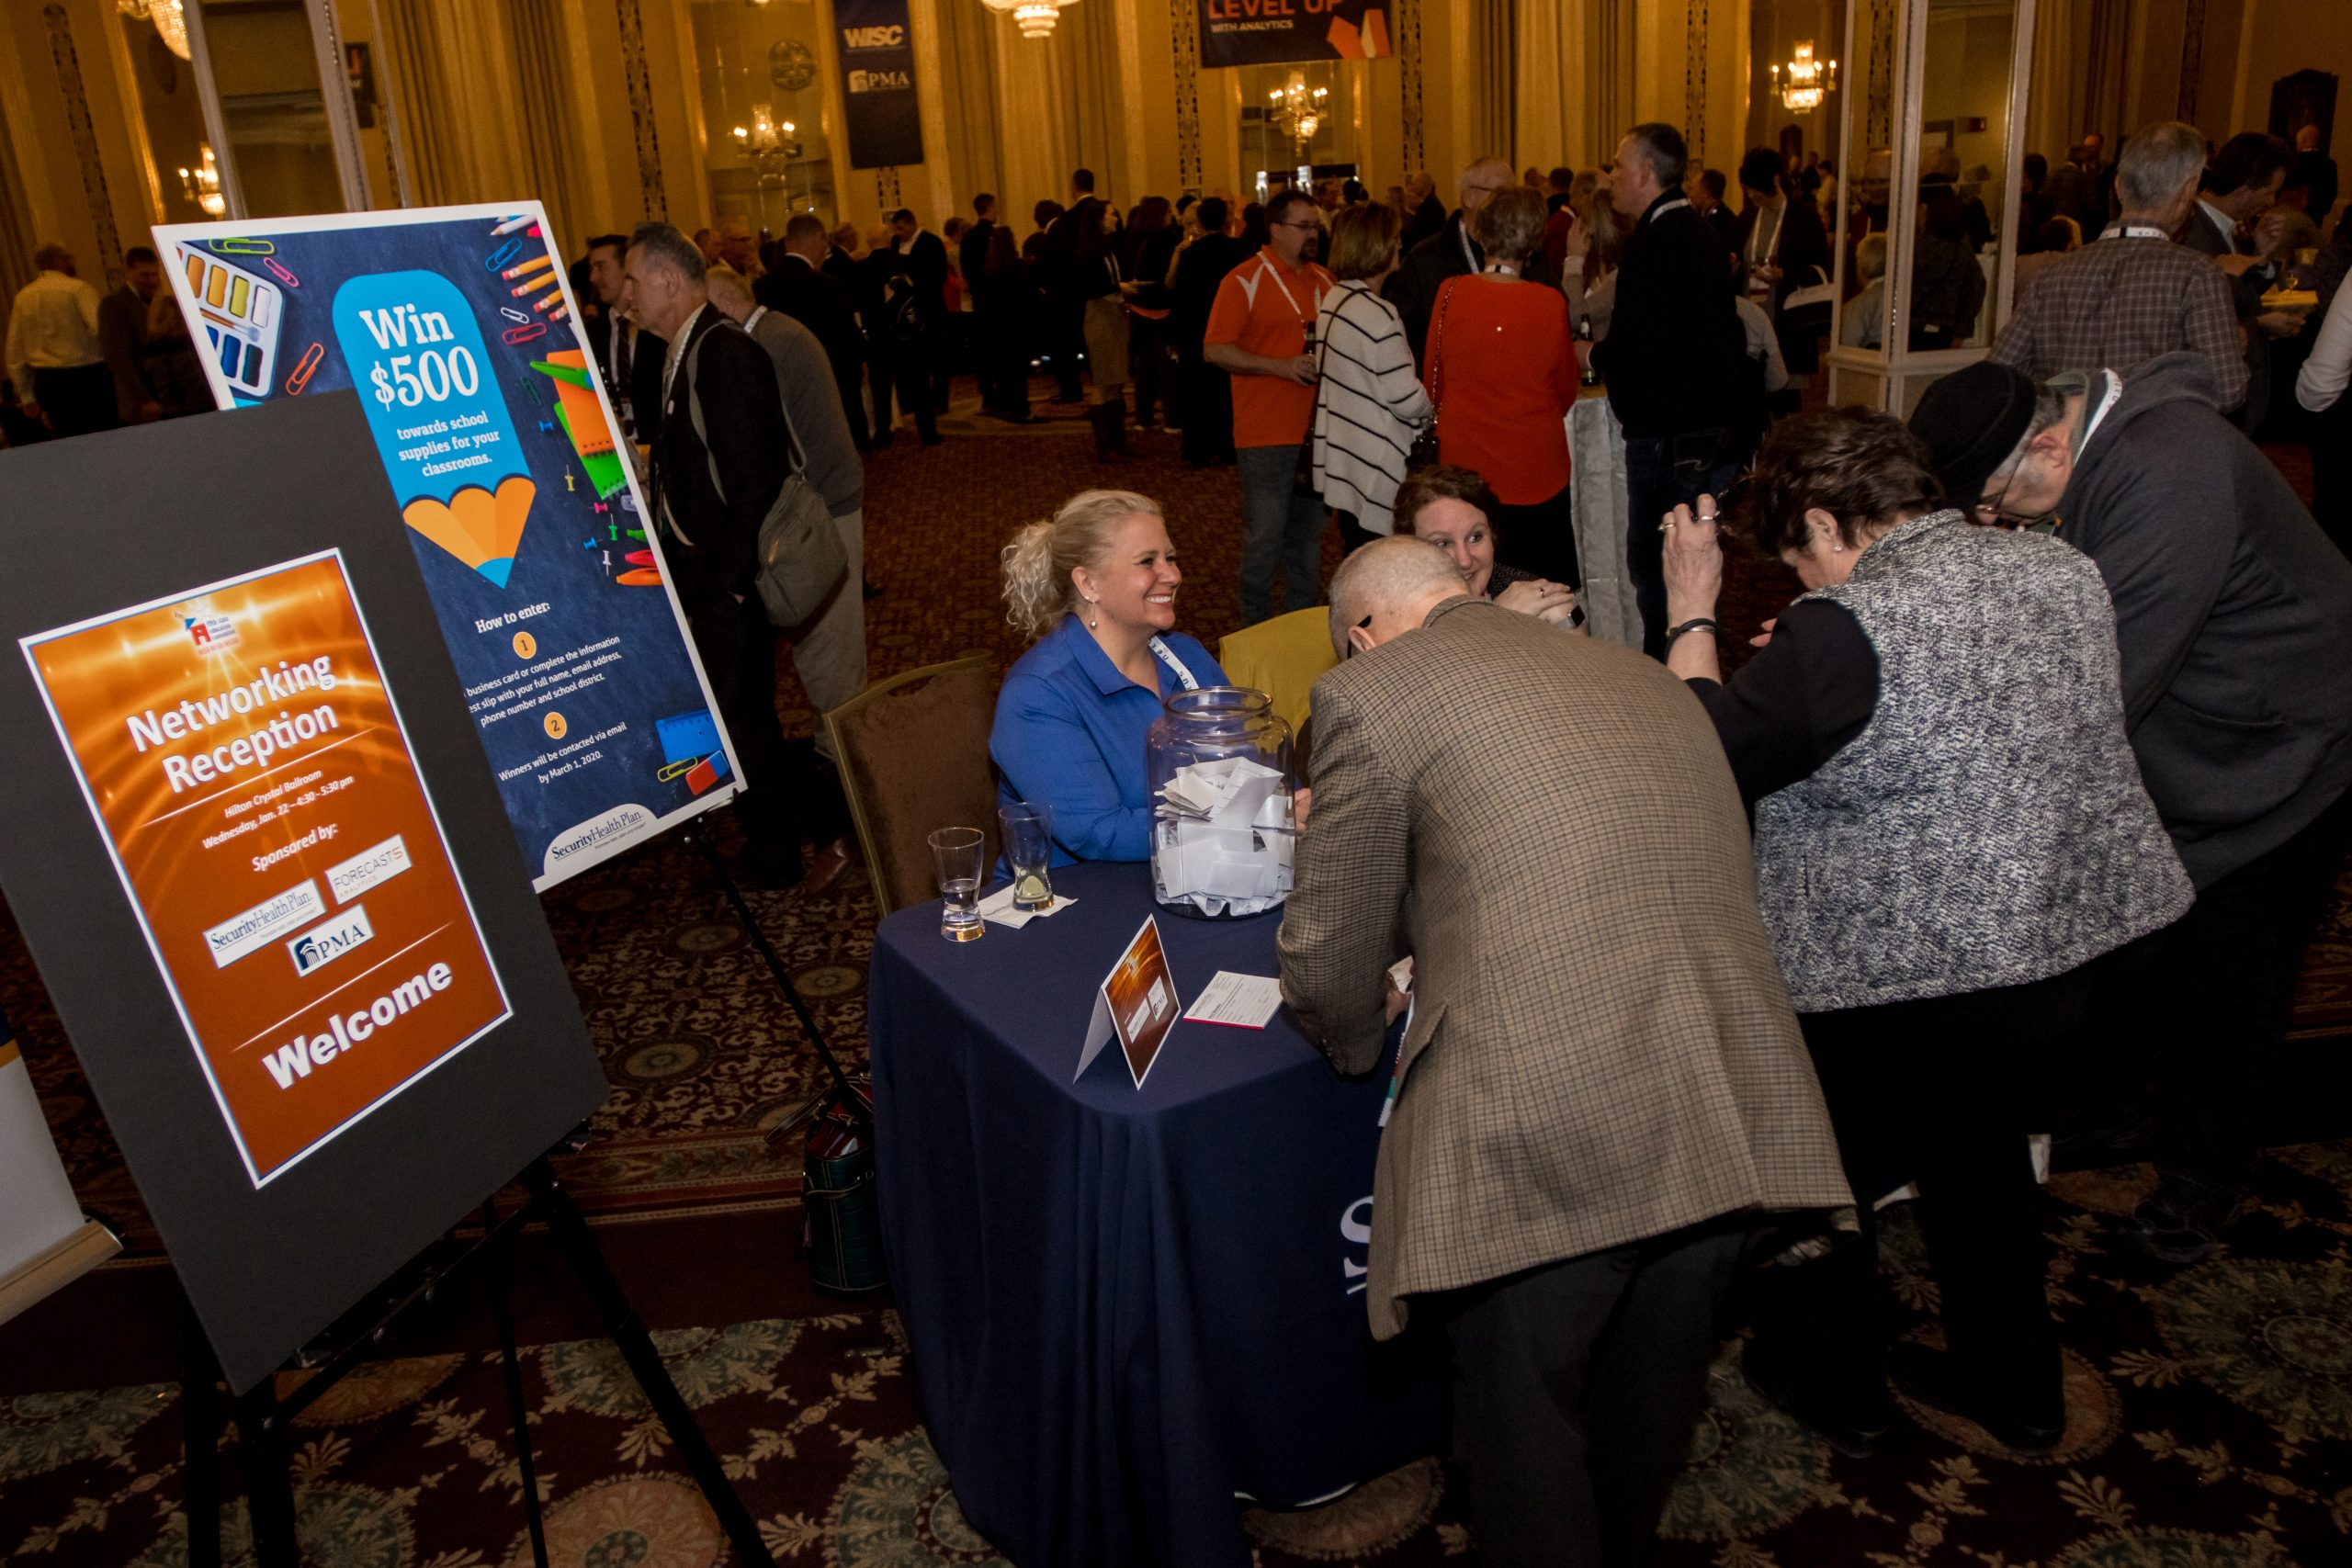 The Networking Reception allows convention attendees to mingle.